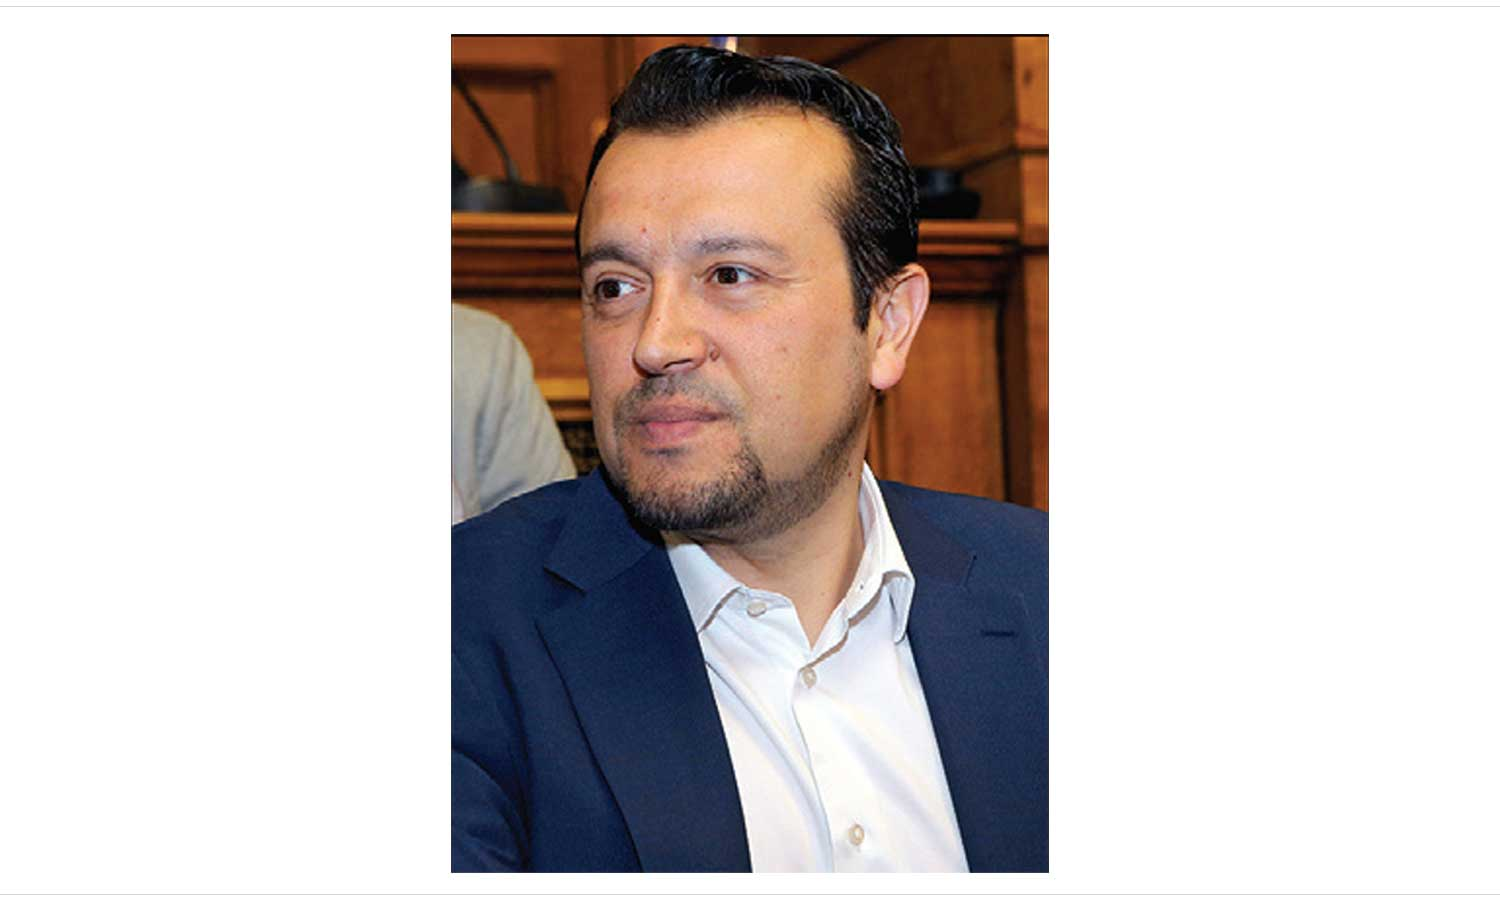 Nikos Pappas, Minister of Digital Policy, Telecommunications and Media